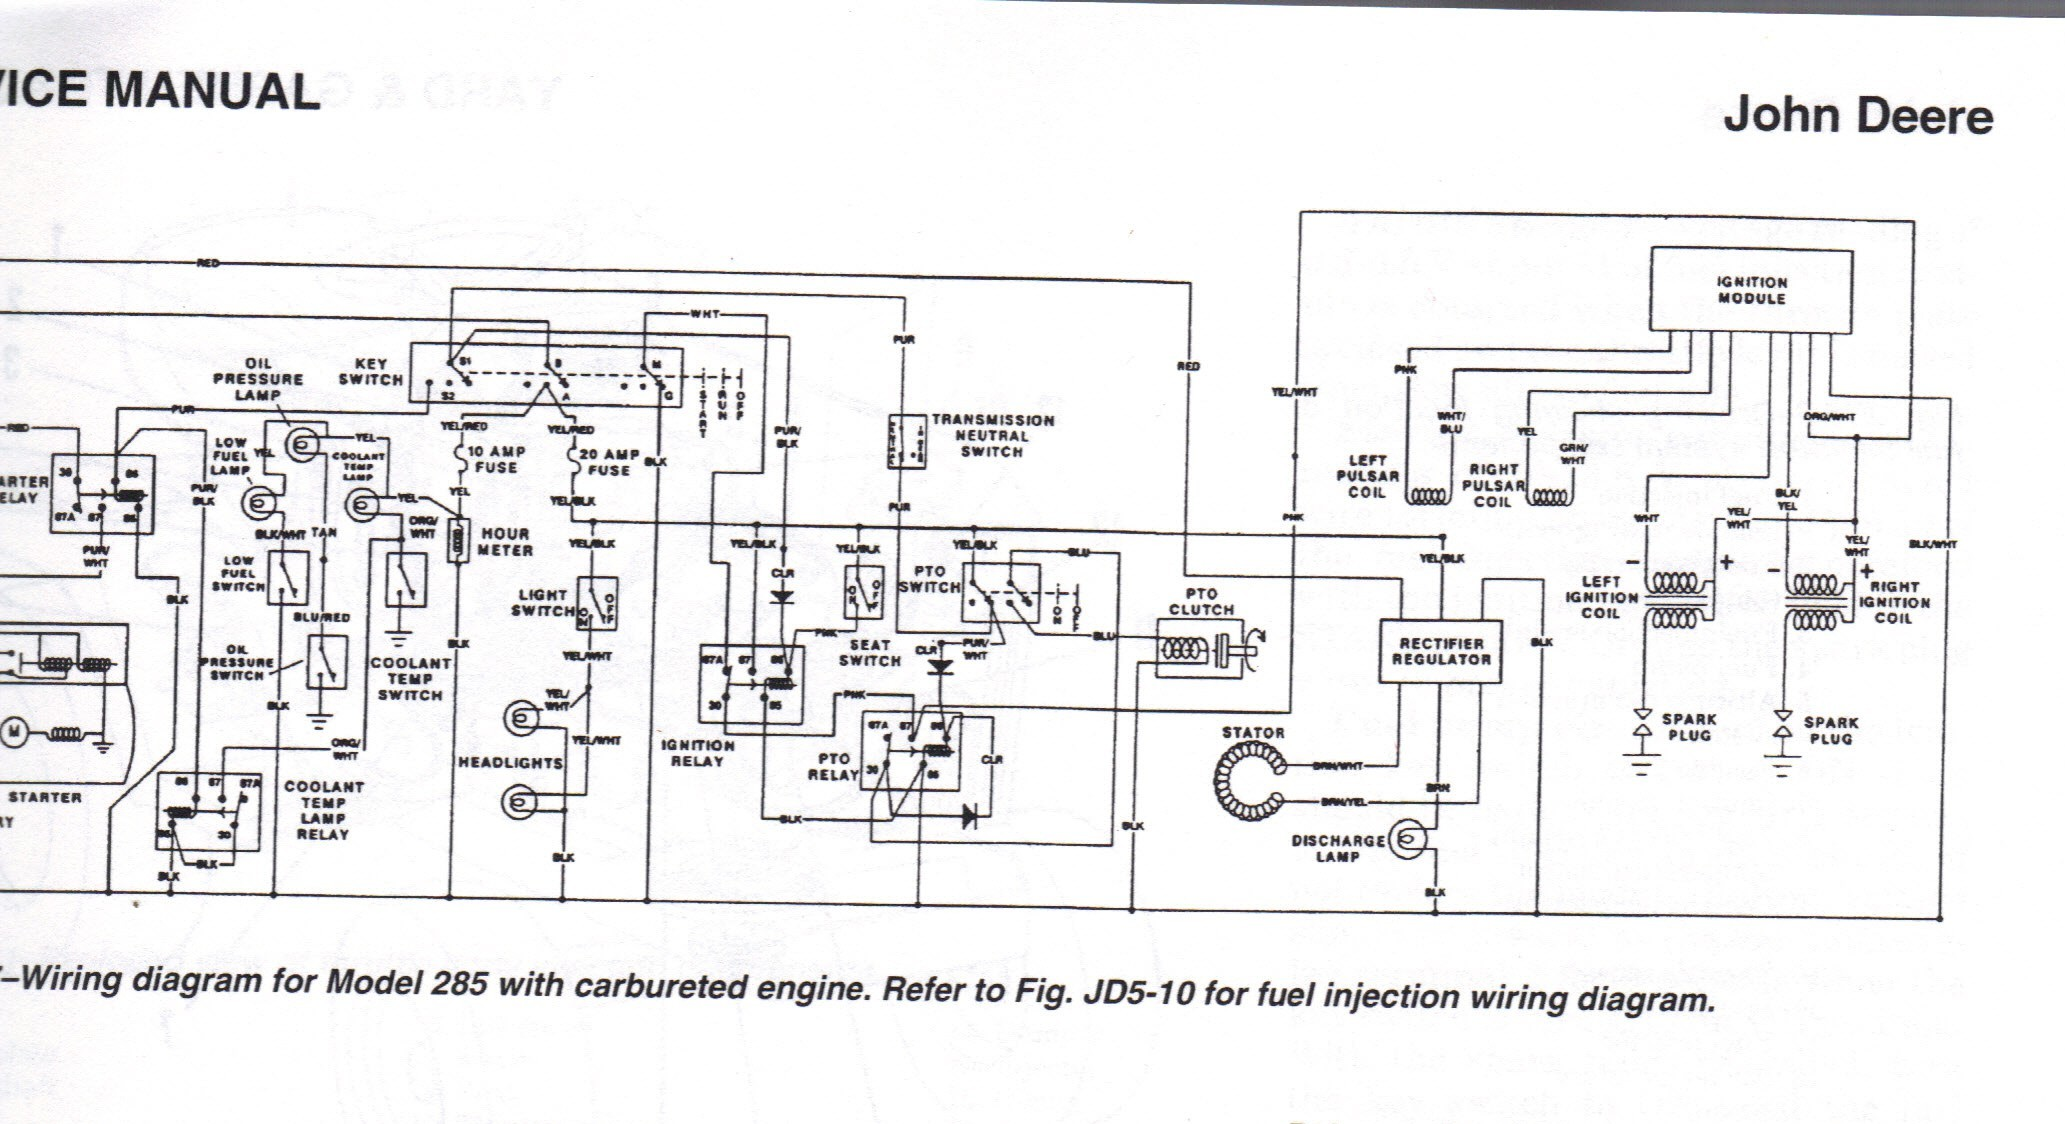 john deere wiring diagram download inspirational inspirational ecobee wiring diagram diagram of john deere wiring diagram download john deere wiring diagram download elegant wiring diagram image